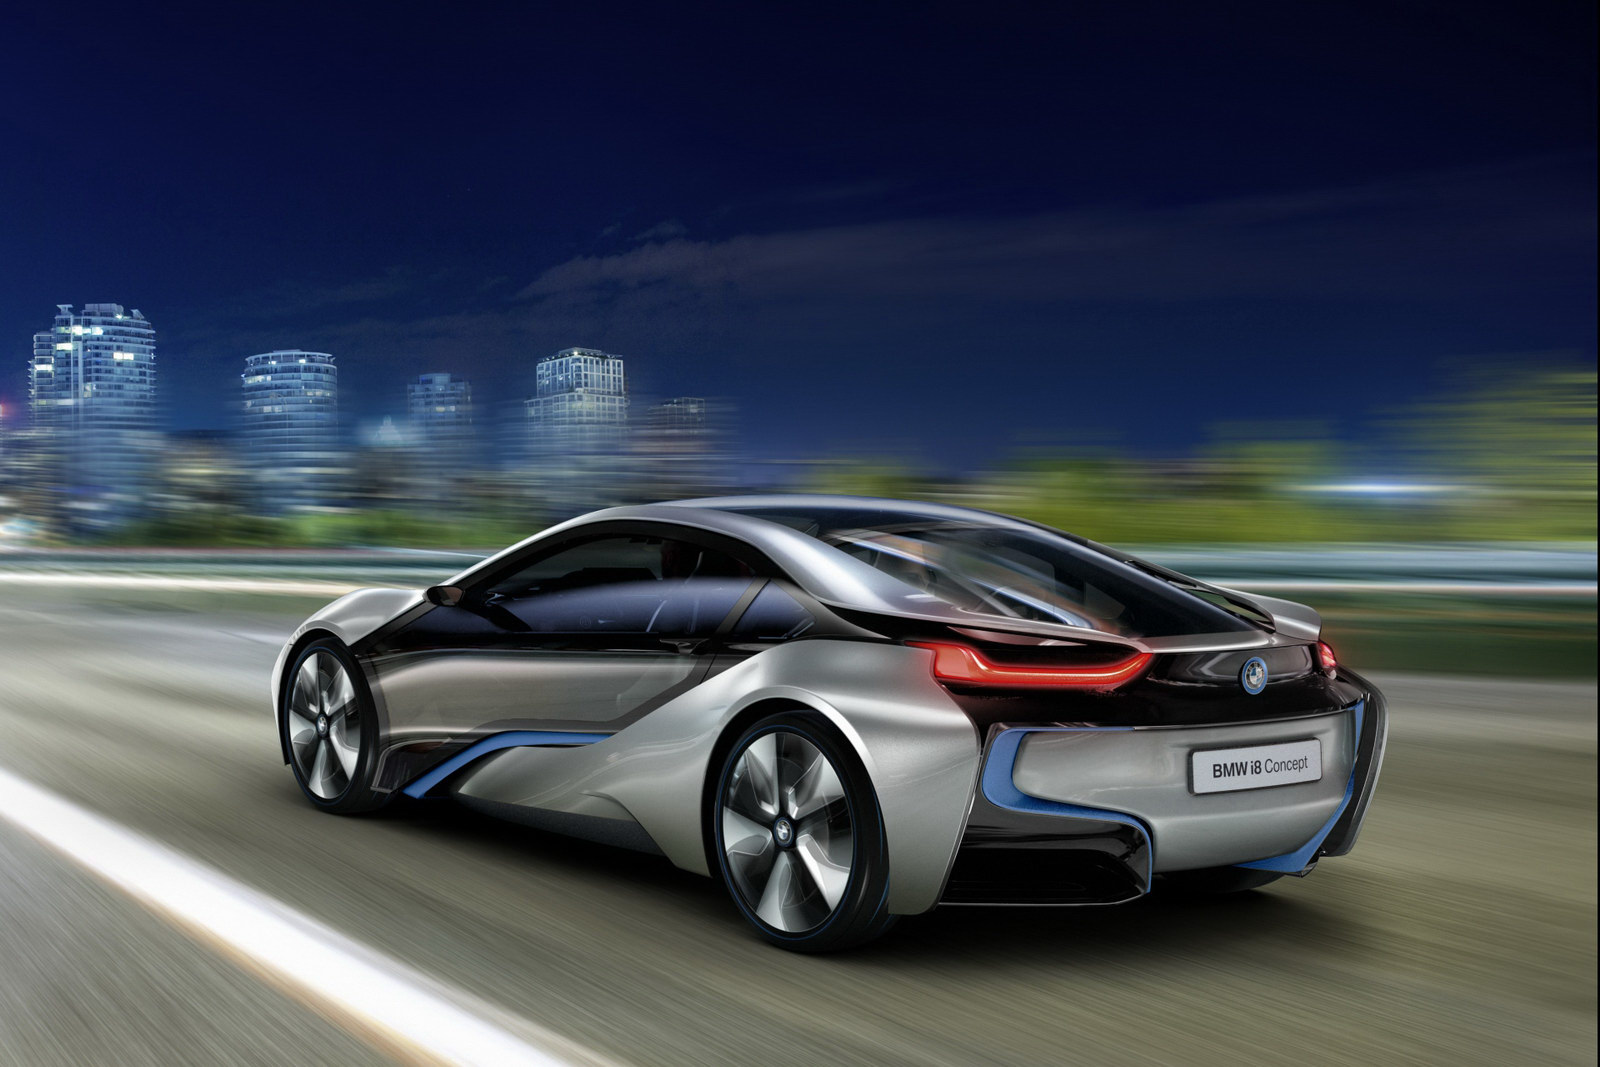 2013 BMW I8 CONCEPT CAR BMW ANNOUNCES IT UPCOMING I8 CONCEPT CAR TO BE UNVEILED IN 2013